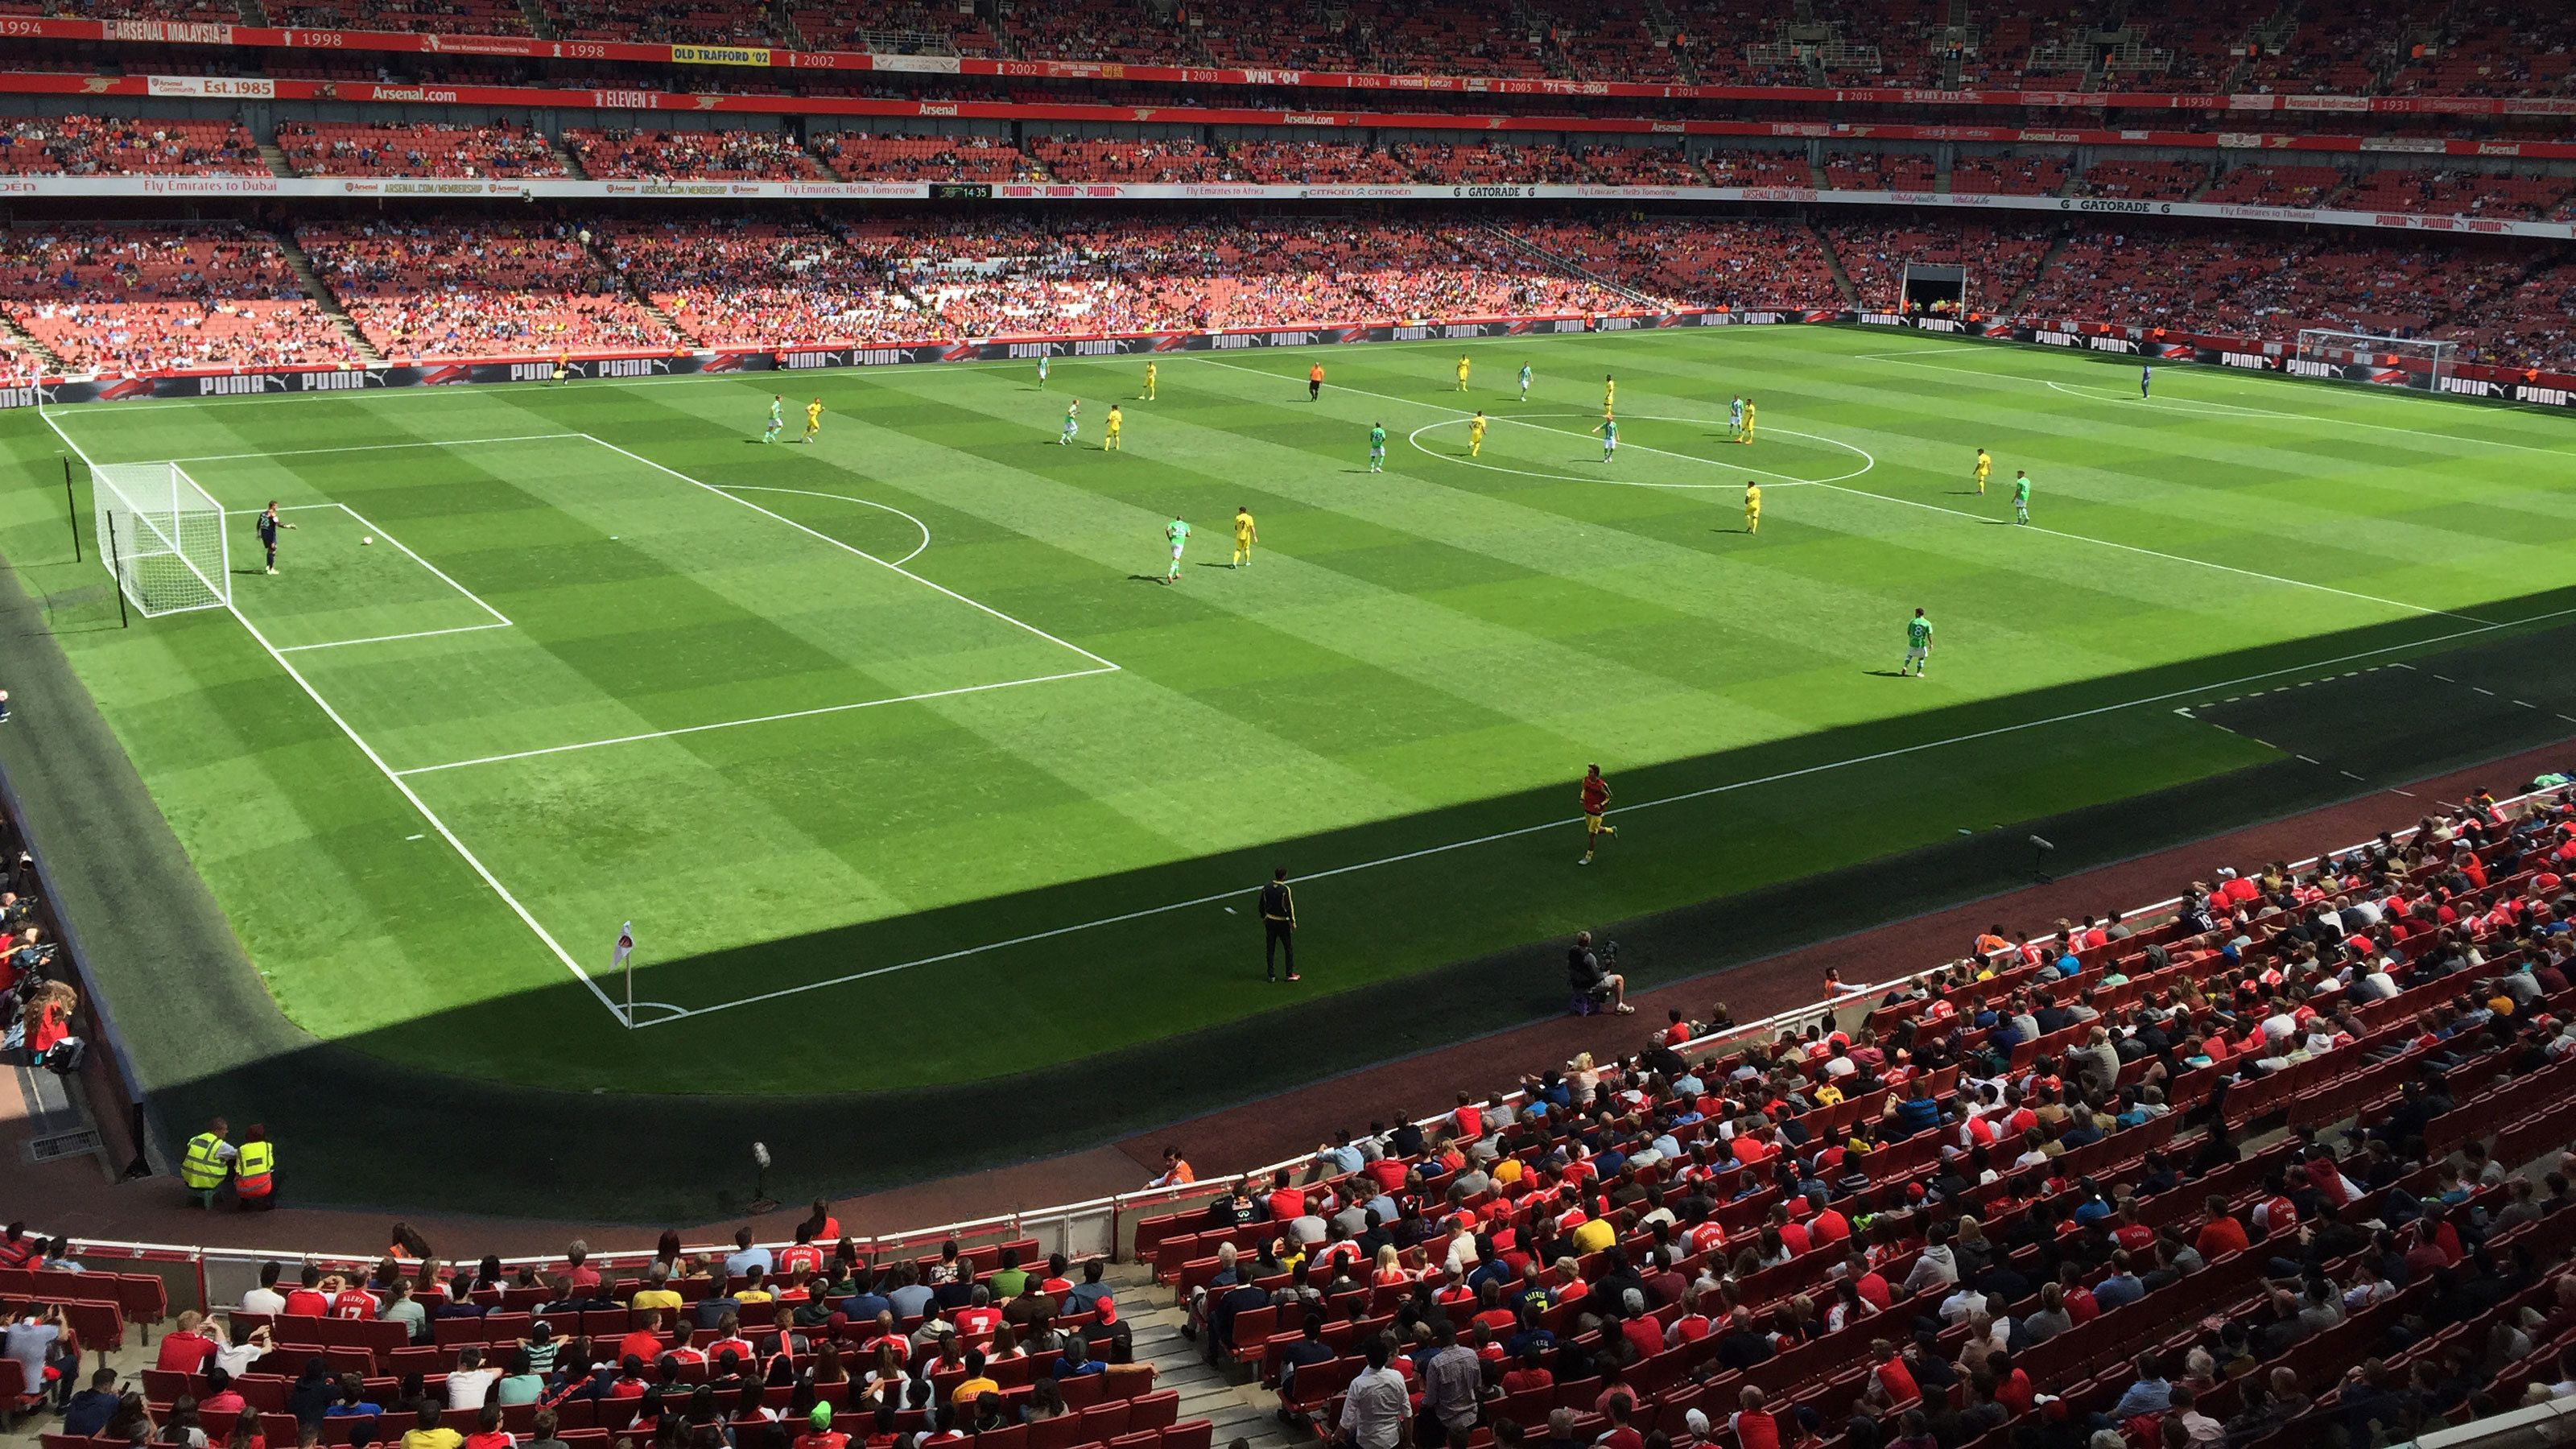 Soccer match at the Emirates Stadium in London